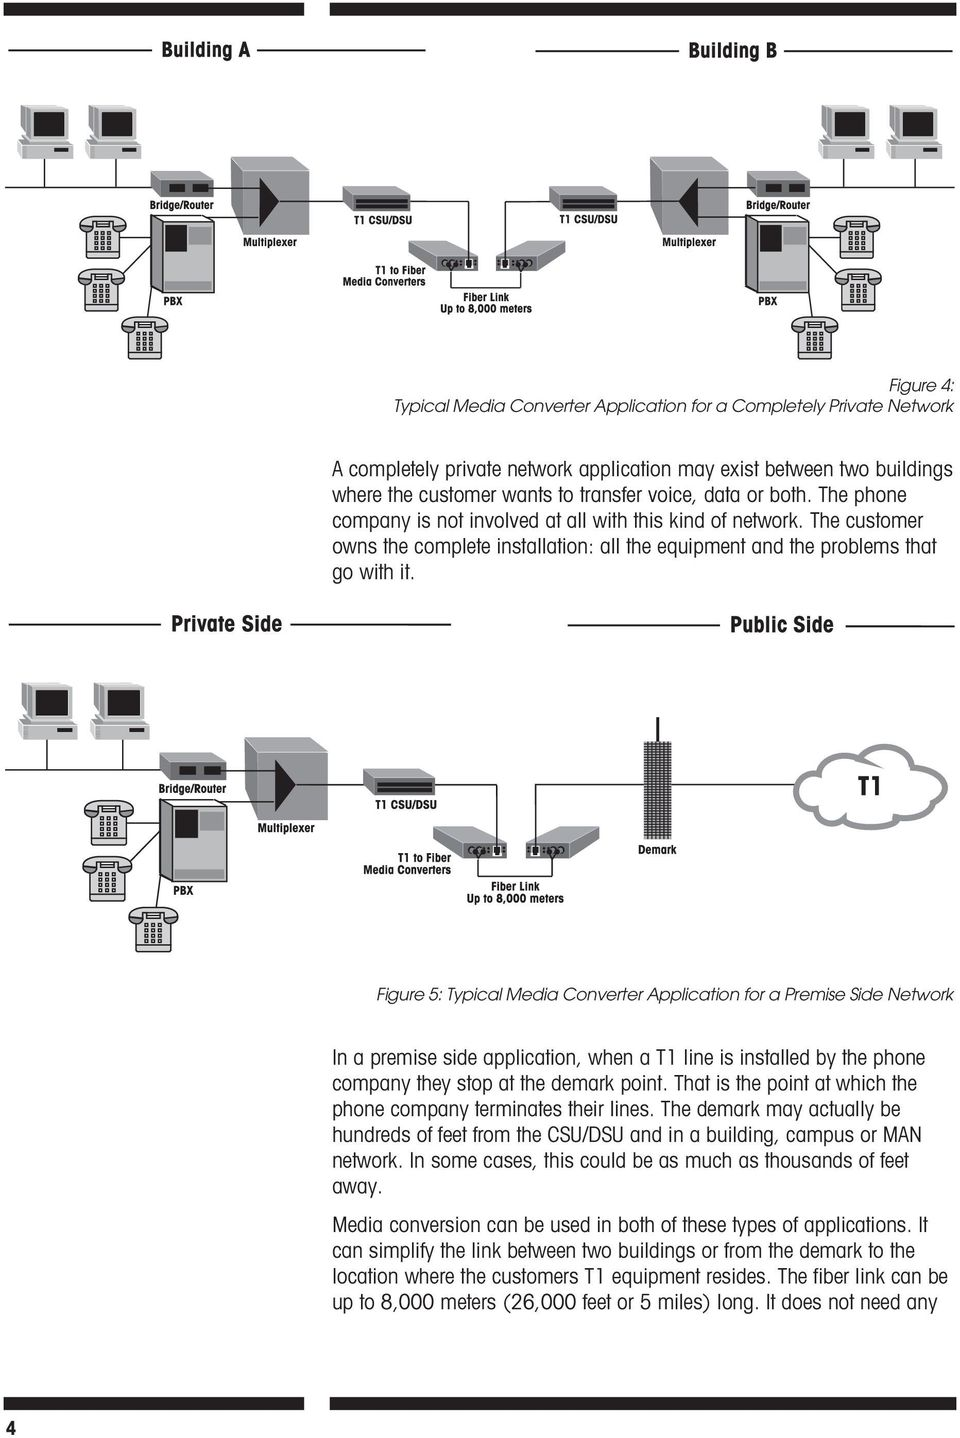 Figure 5: Typical Media Converter Application for a Premise Side Network In a premise side application, when a T1 line is installed by the phone company they stop at the demark point.